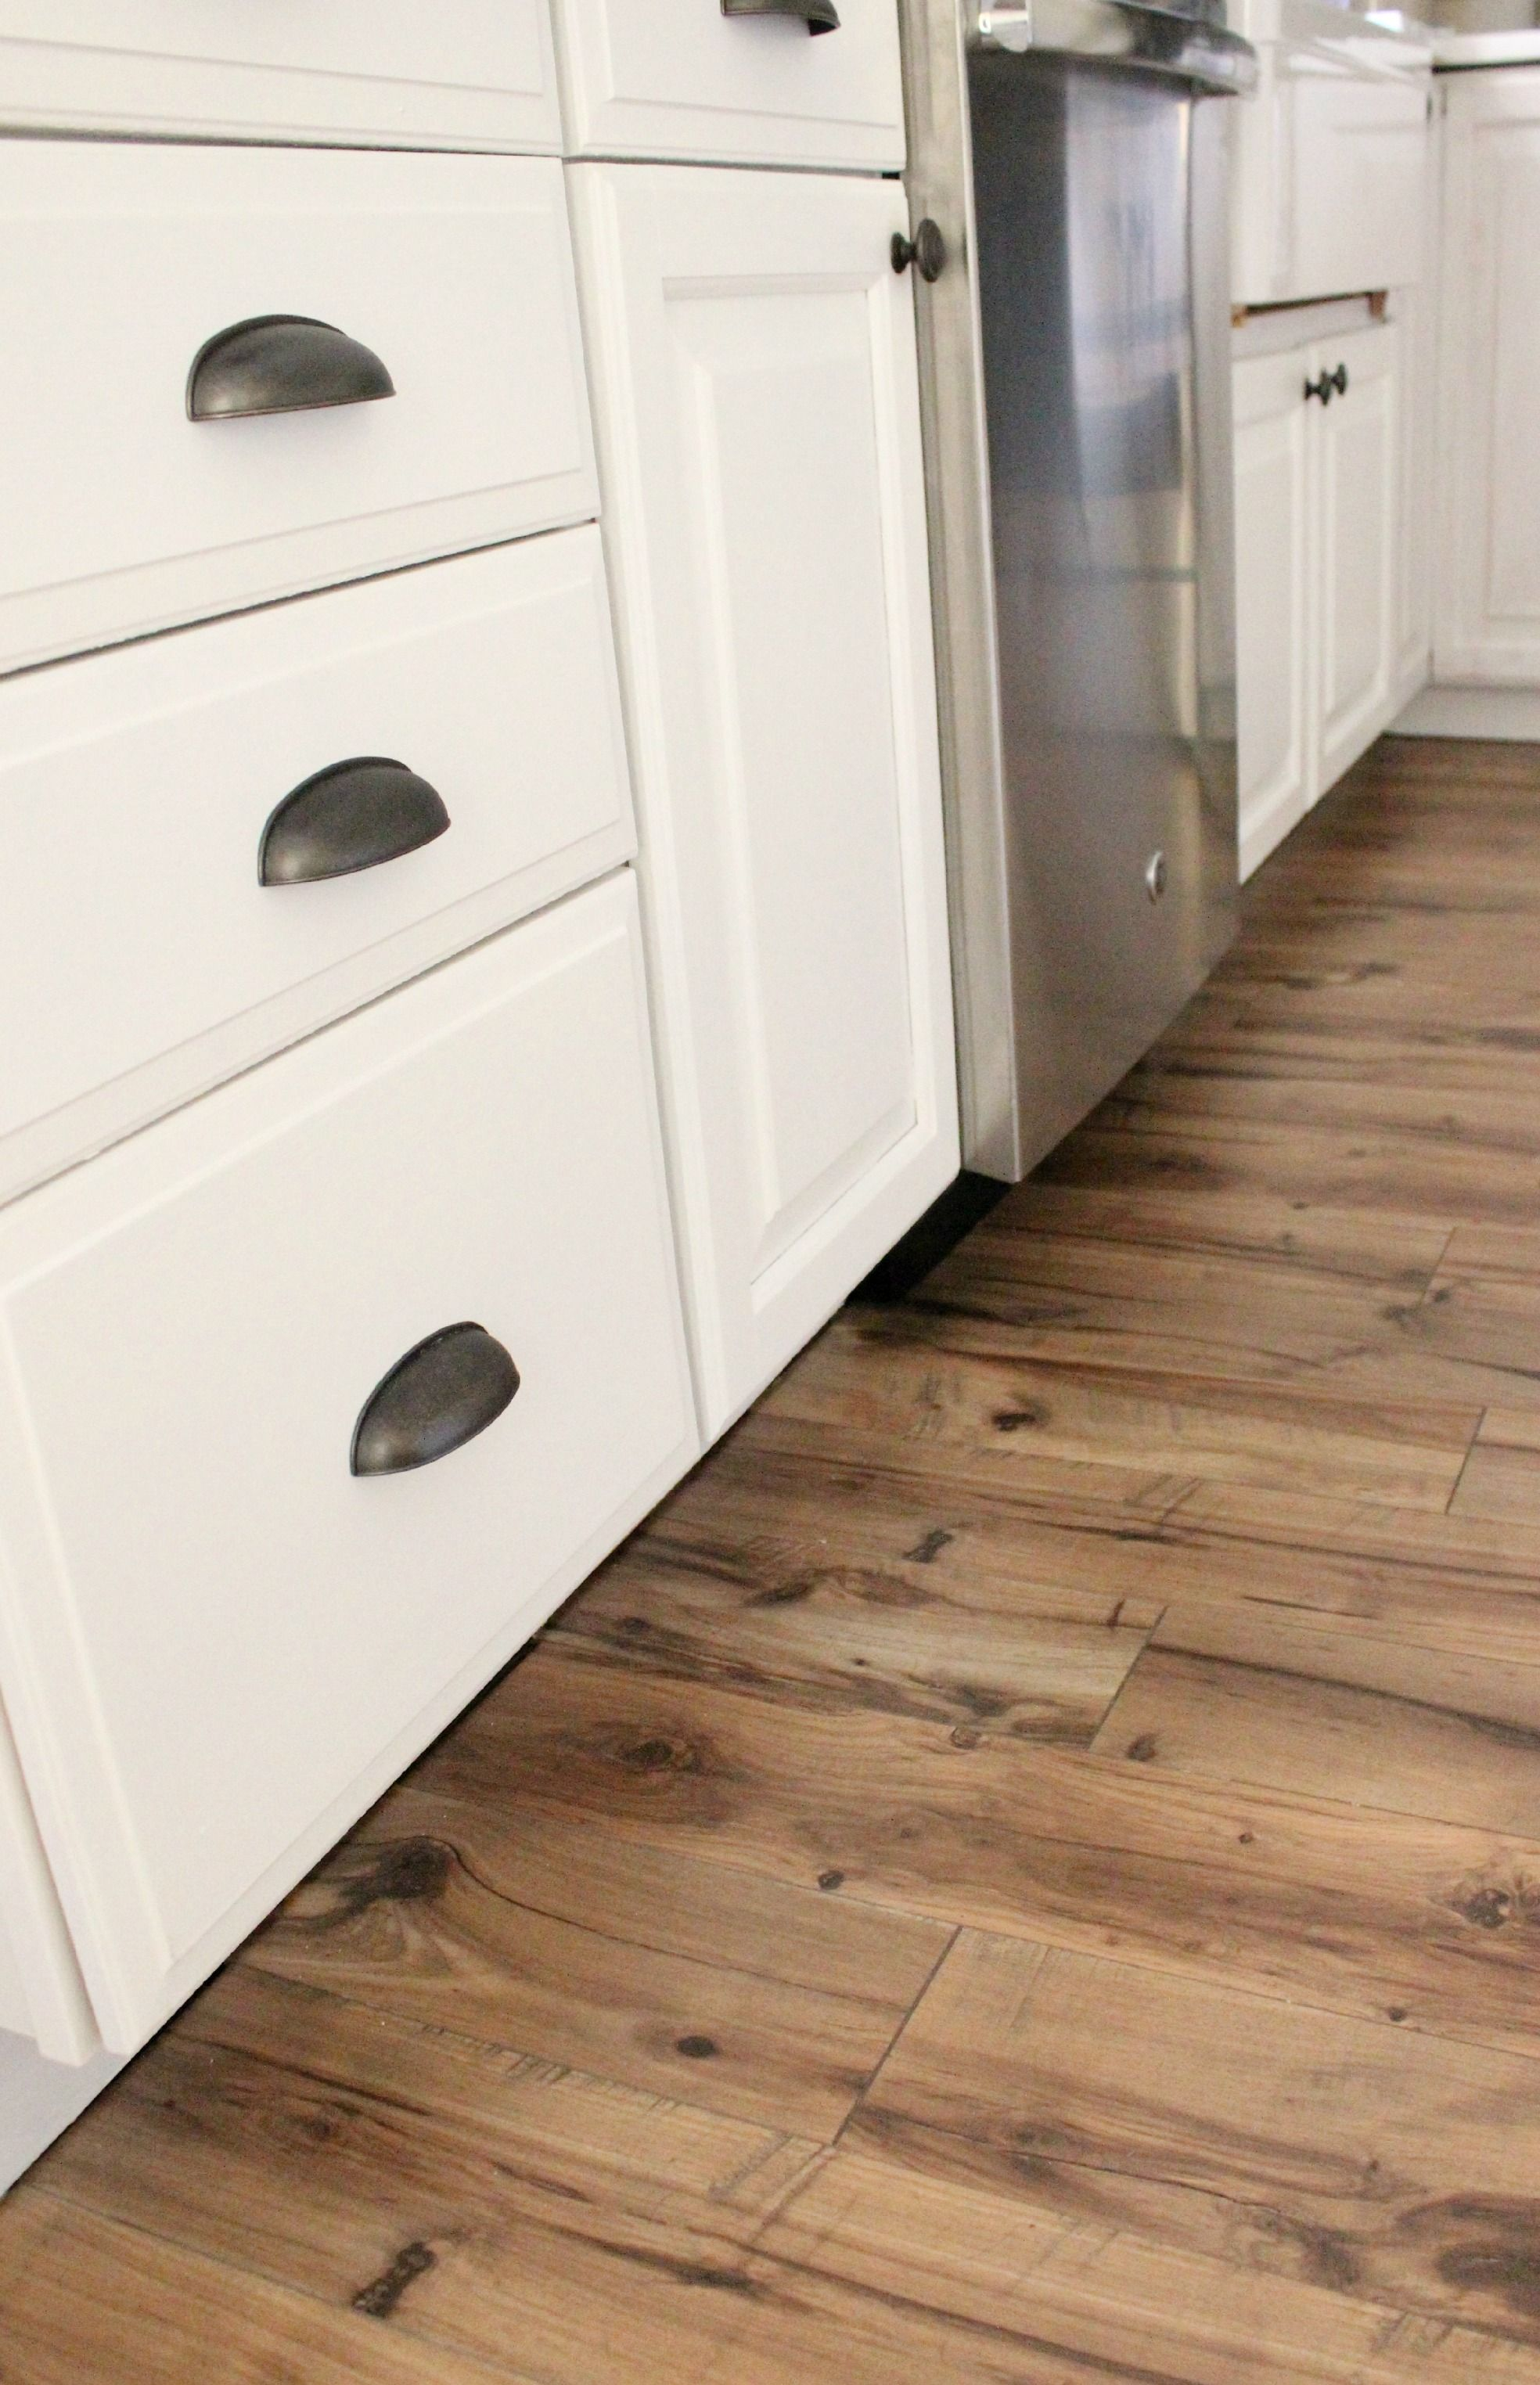 Home why and how we chose our pergo flooring laminate flooring a review on how and why we chose pergo laminate flooring over hardwood flooring dailygadgetfo Images